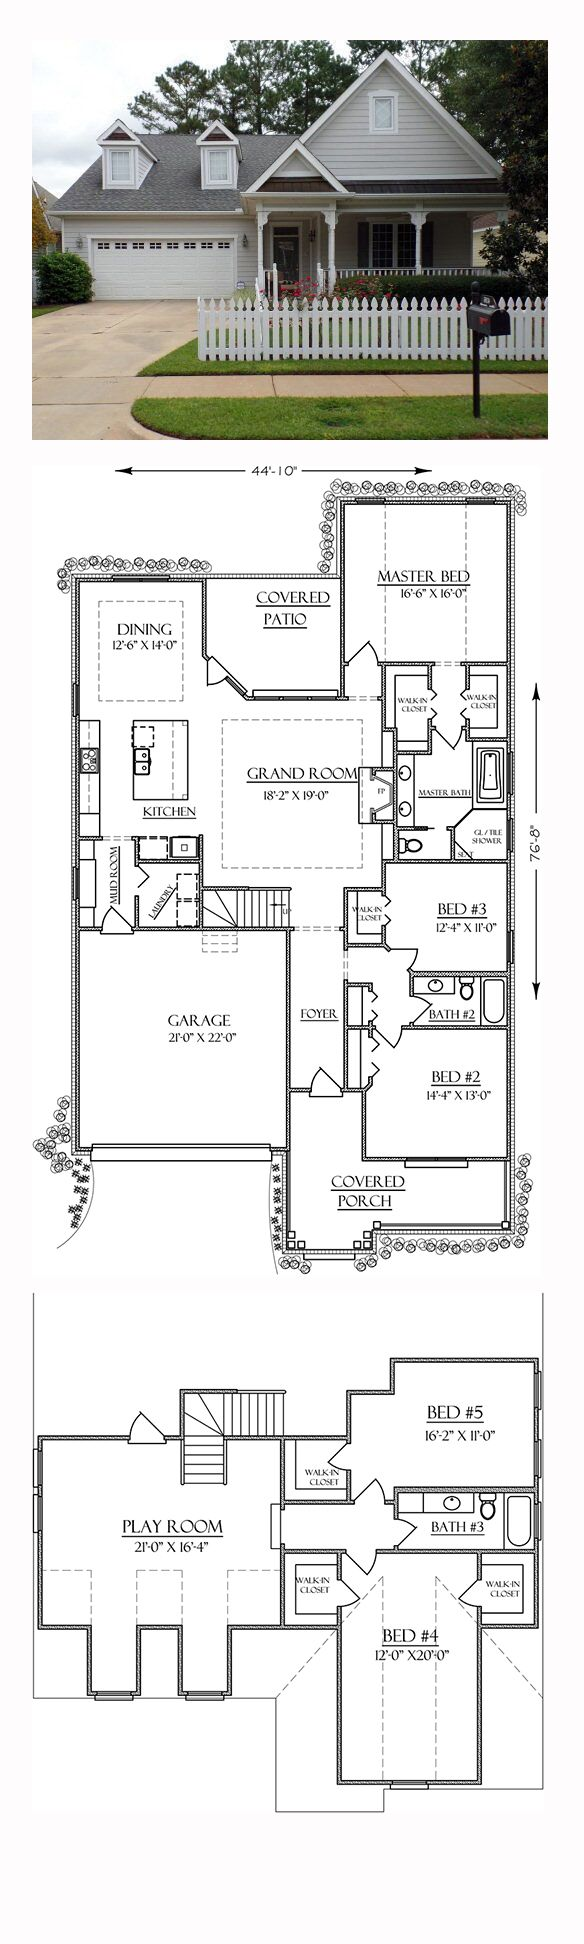 New House Plan 74756 | Total Living Area: 3162 Sq. Ft., 5